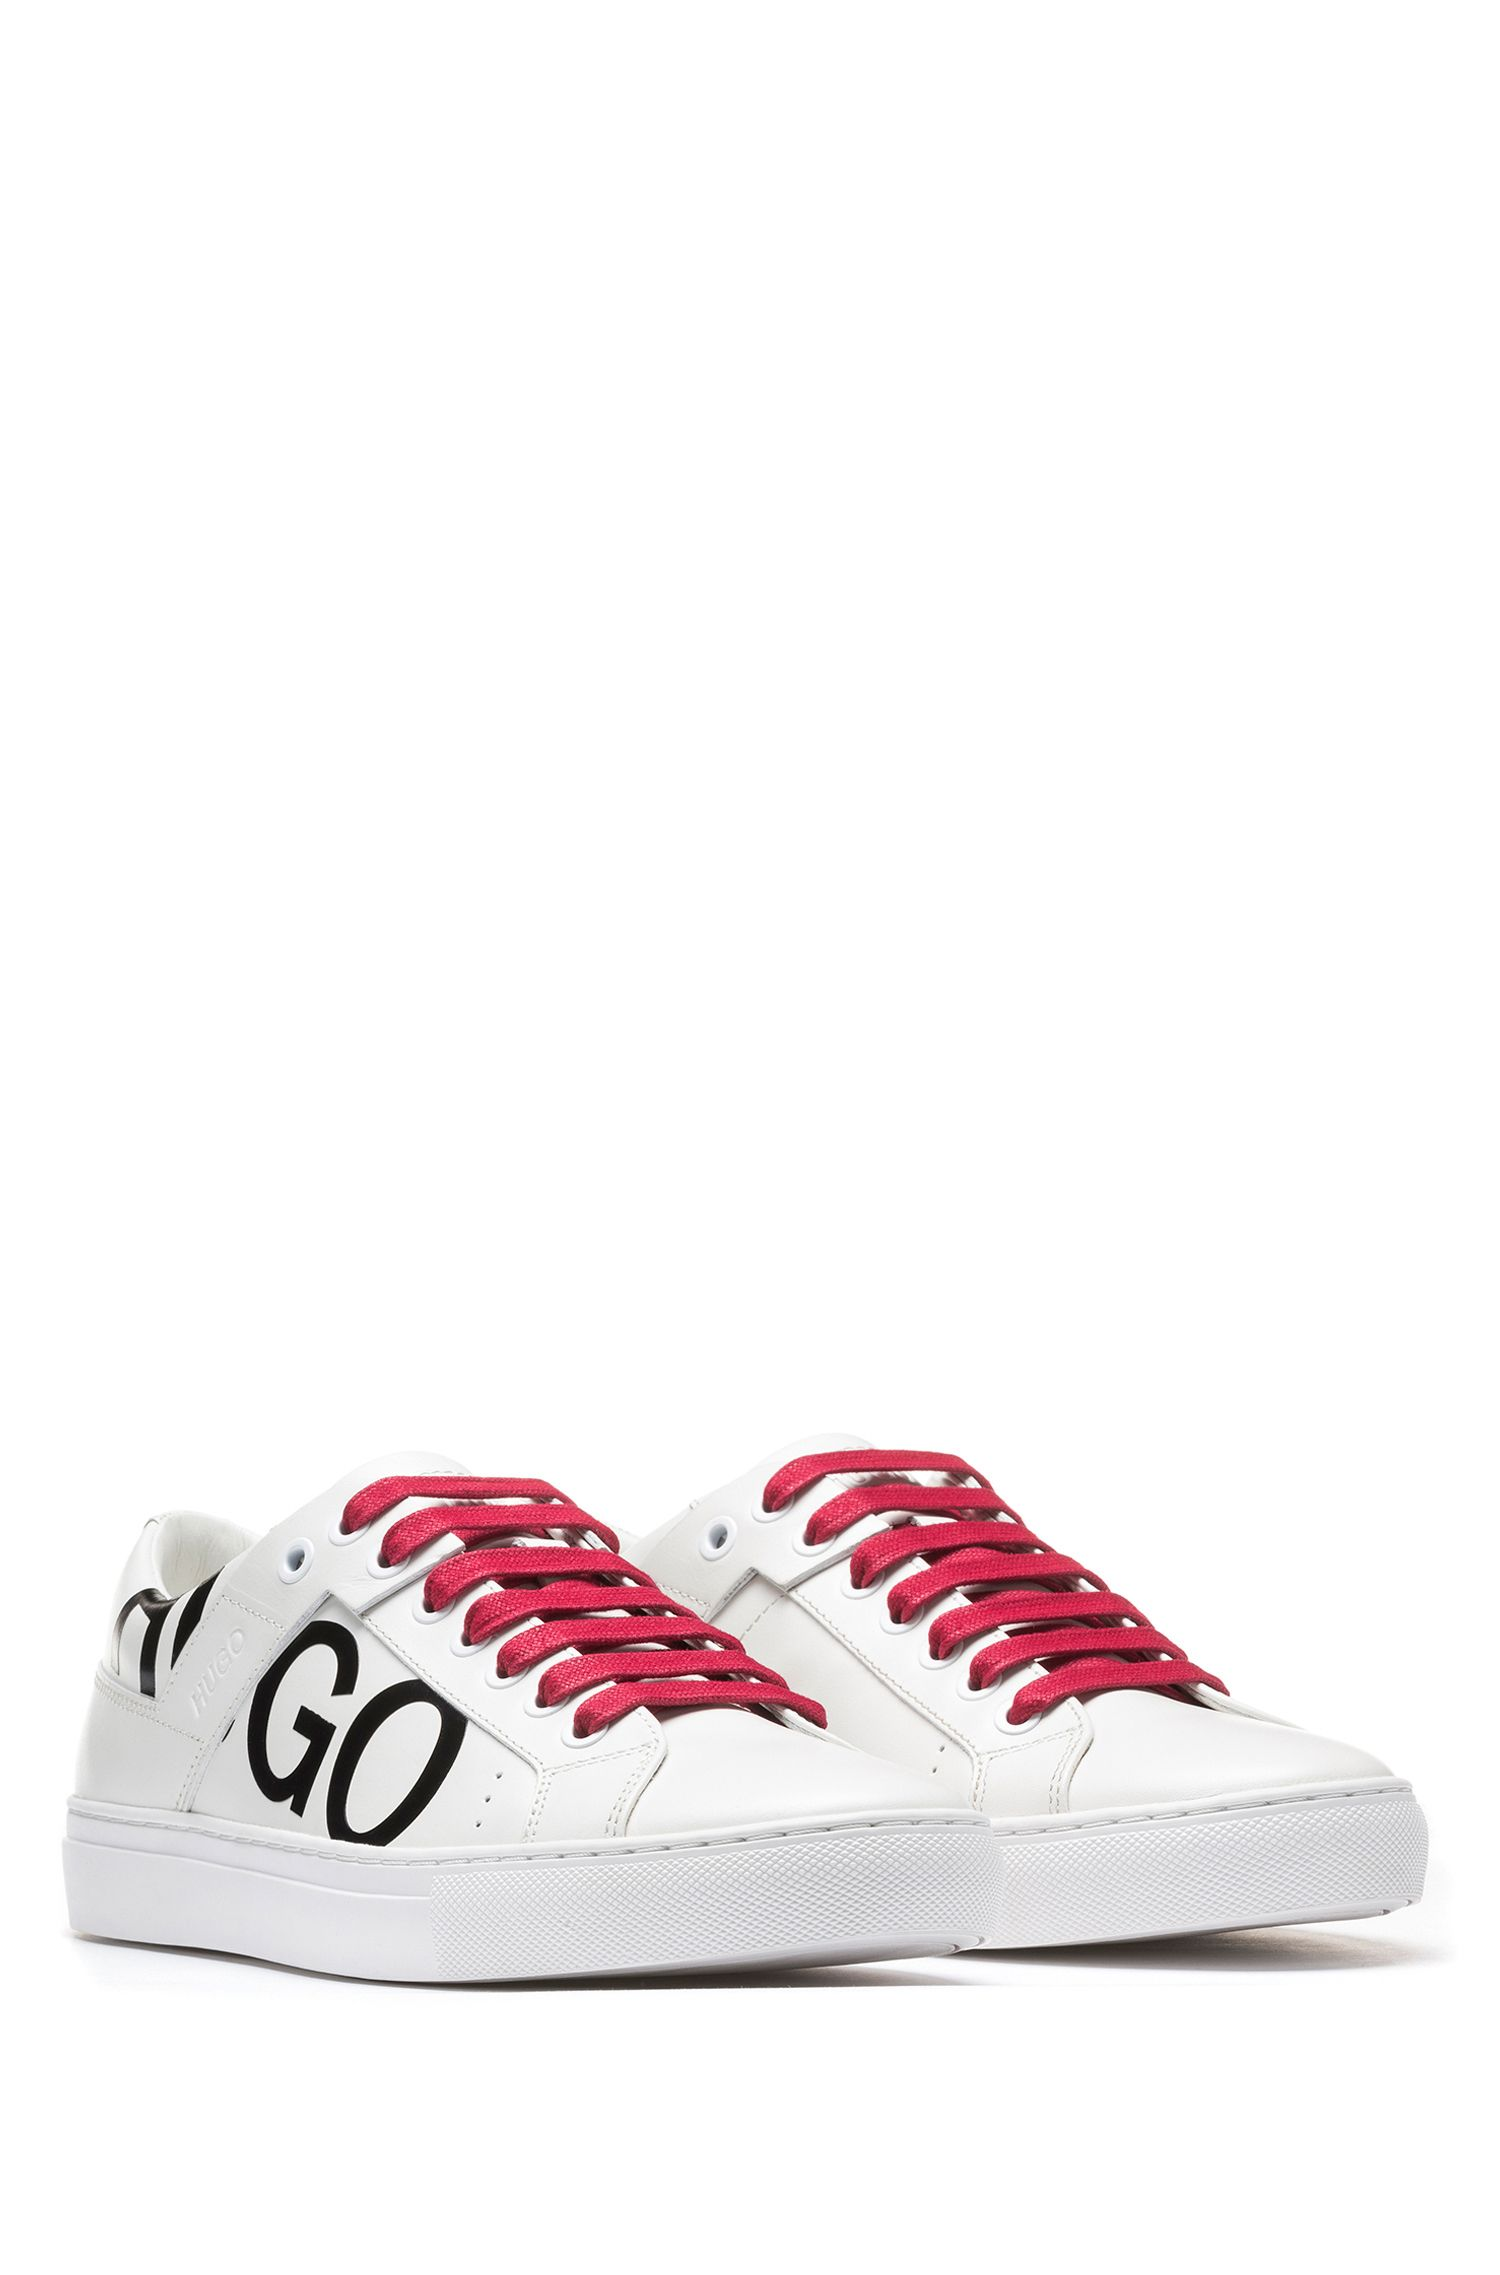 Hugo Boss - Leather lace-up trainers with logo detail - 2